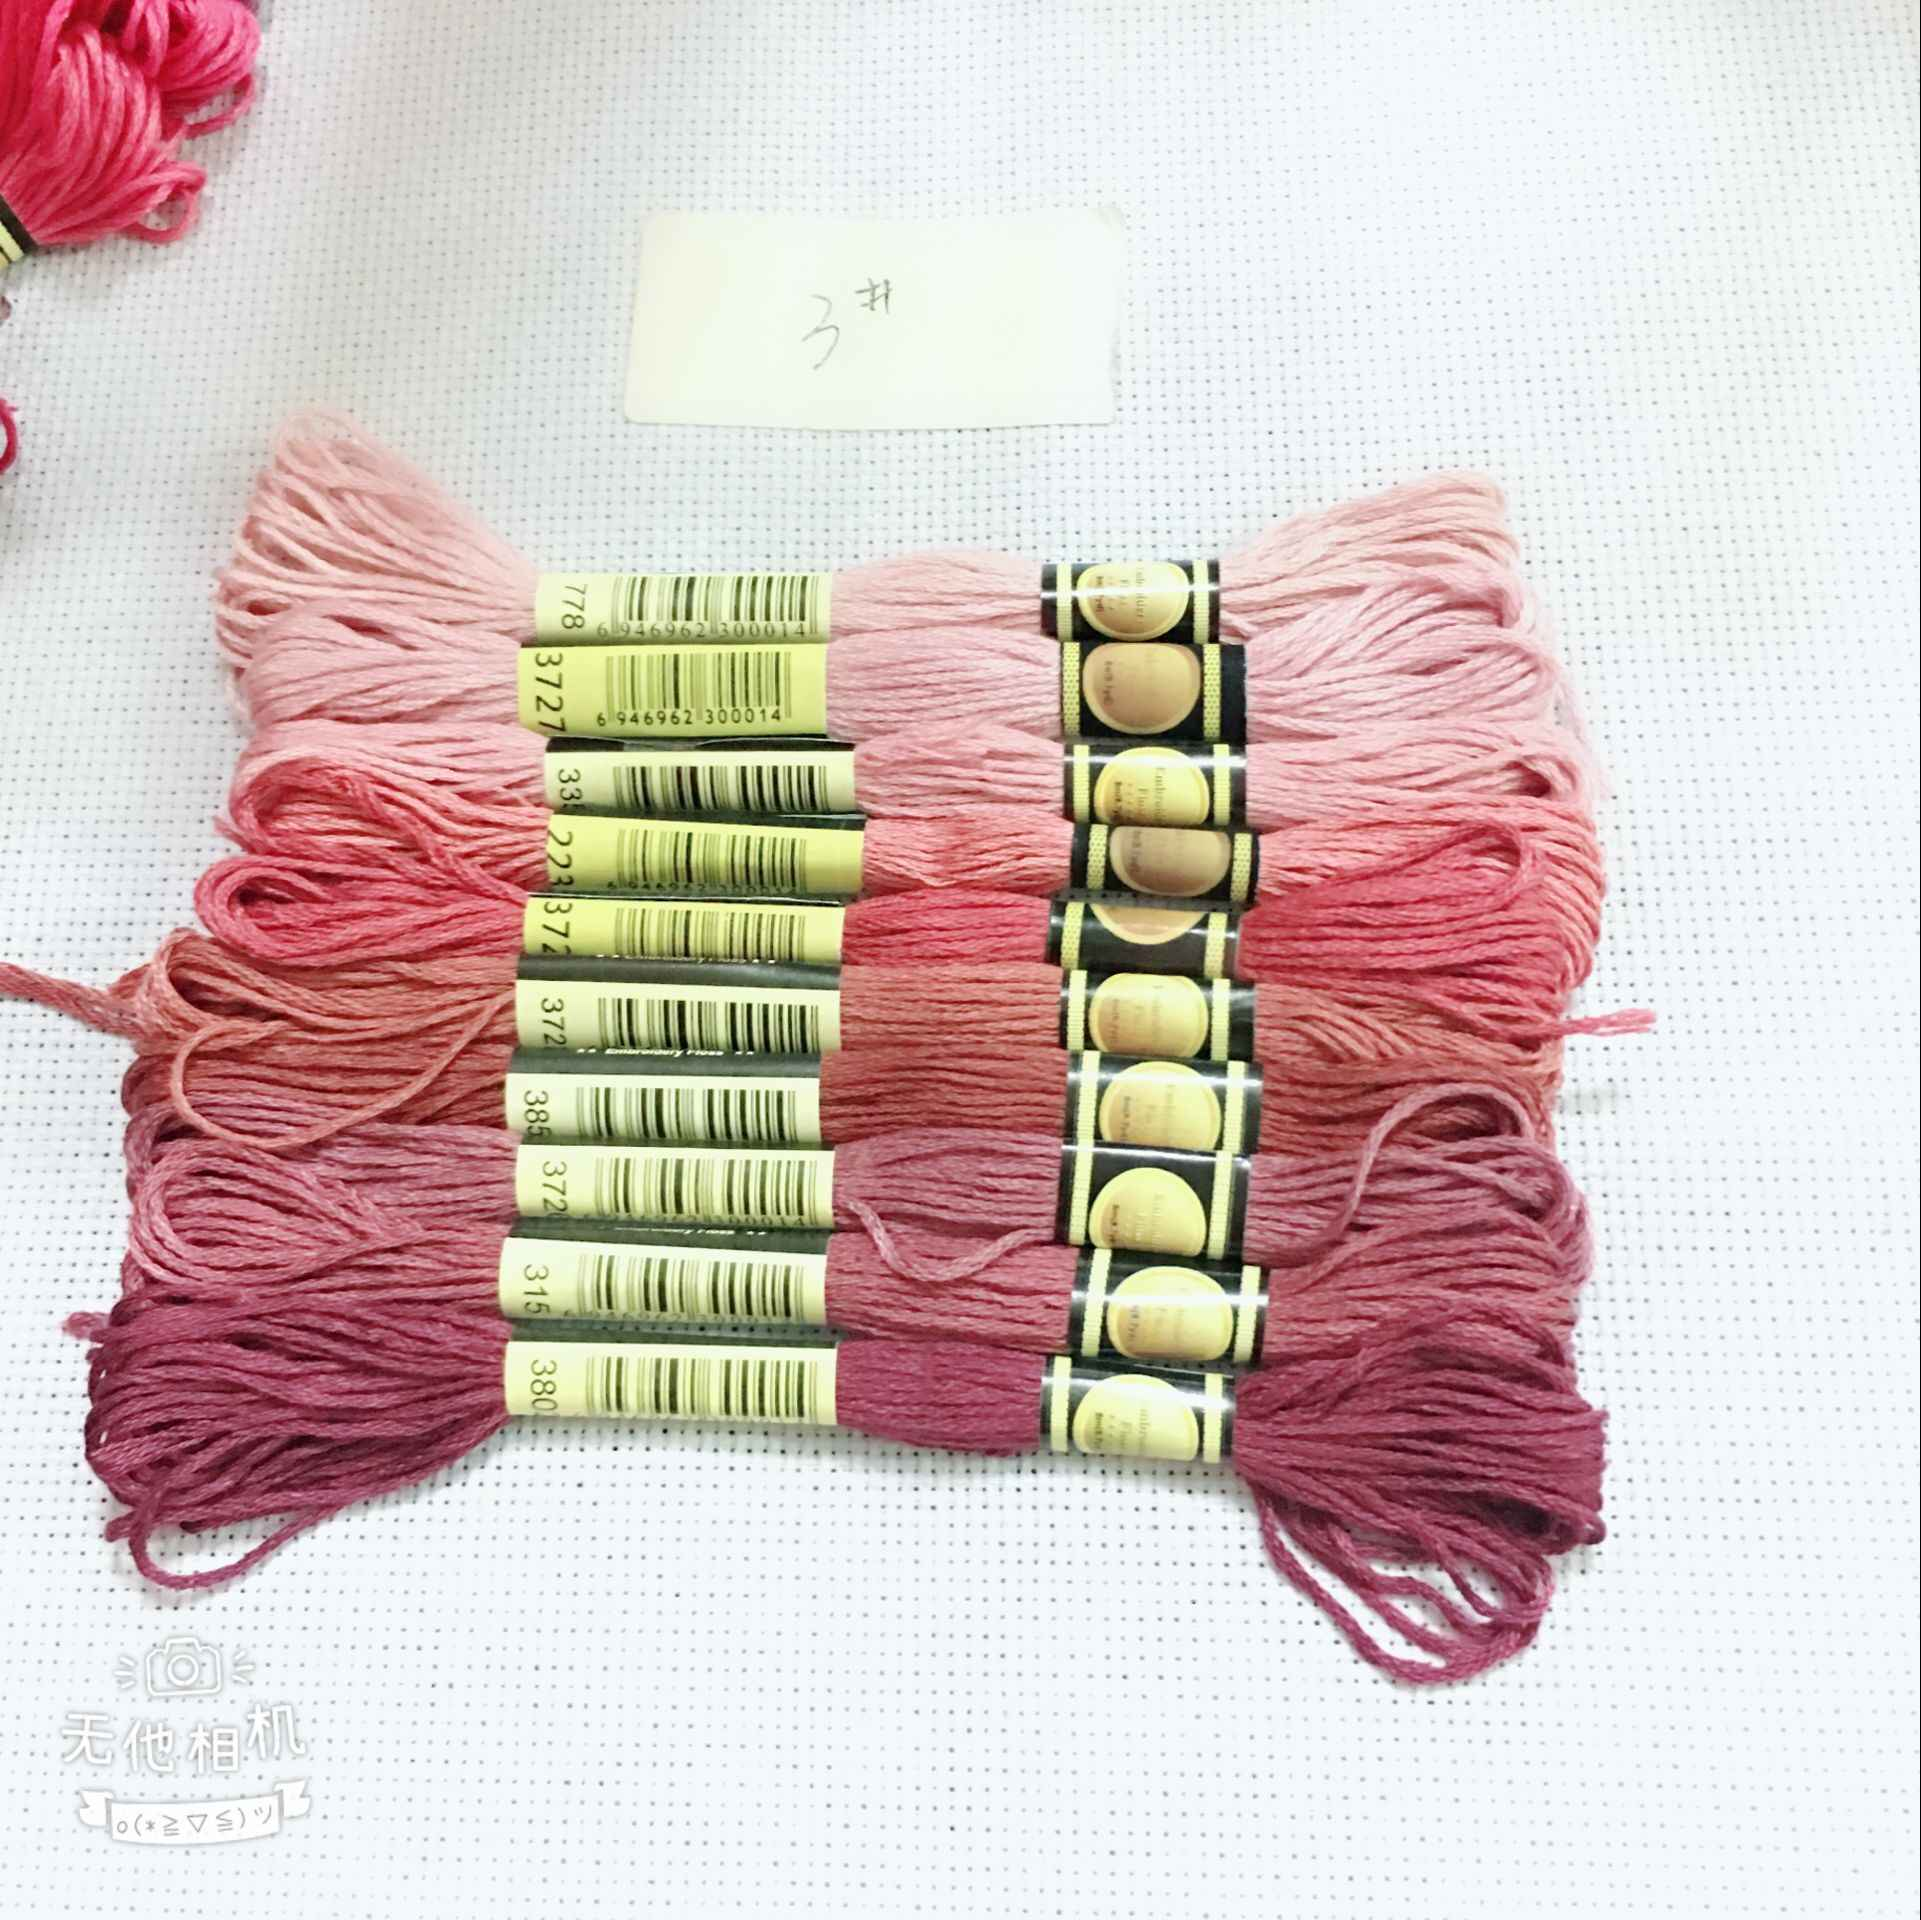 Black Cross Stitch Cotton Sewing Embroidery Thread Floss Kit DIY Sewing Tools